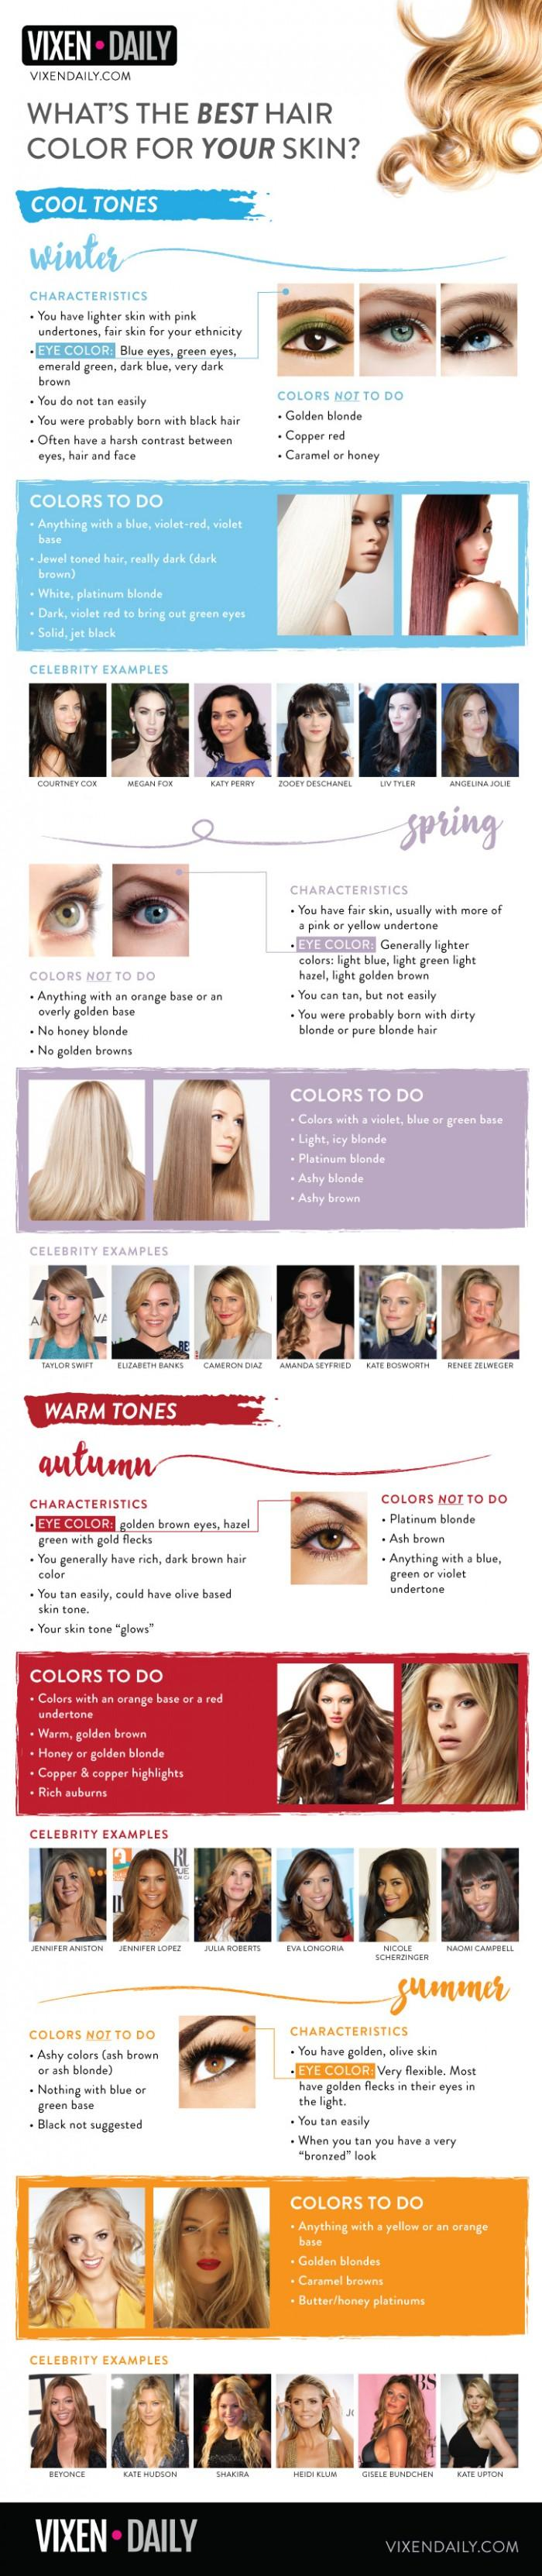 What's The Best Hair Color For Your Skin